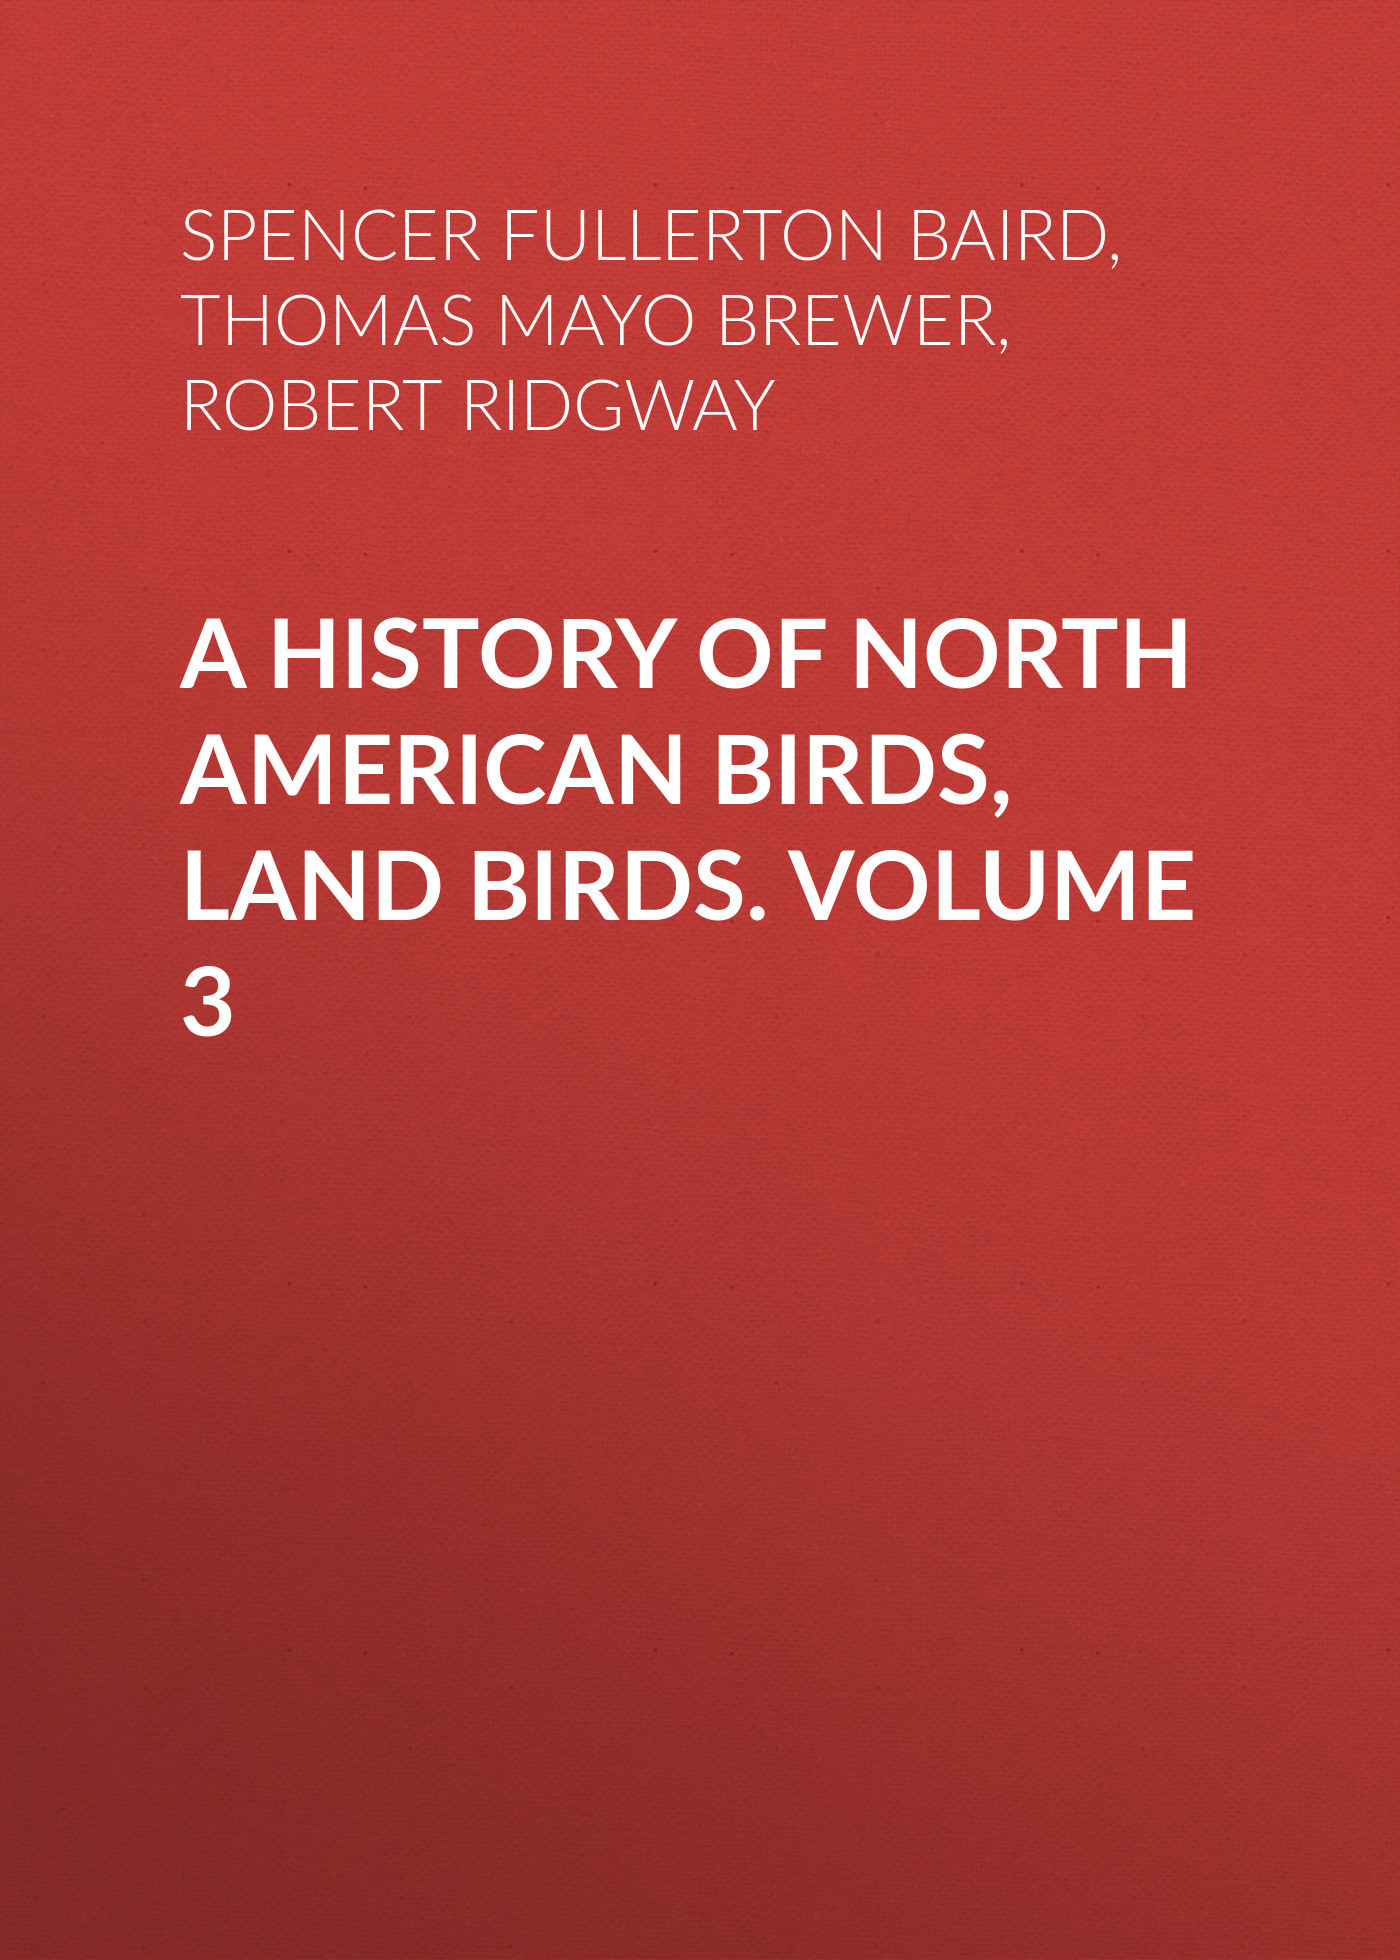 A History of North American Birds, Land Birds. Volume 3